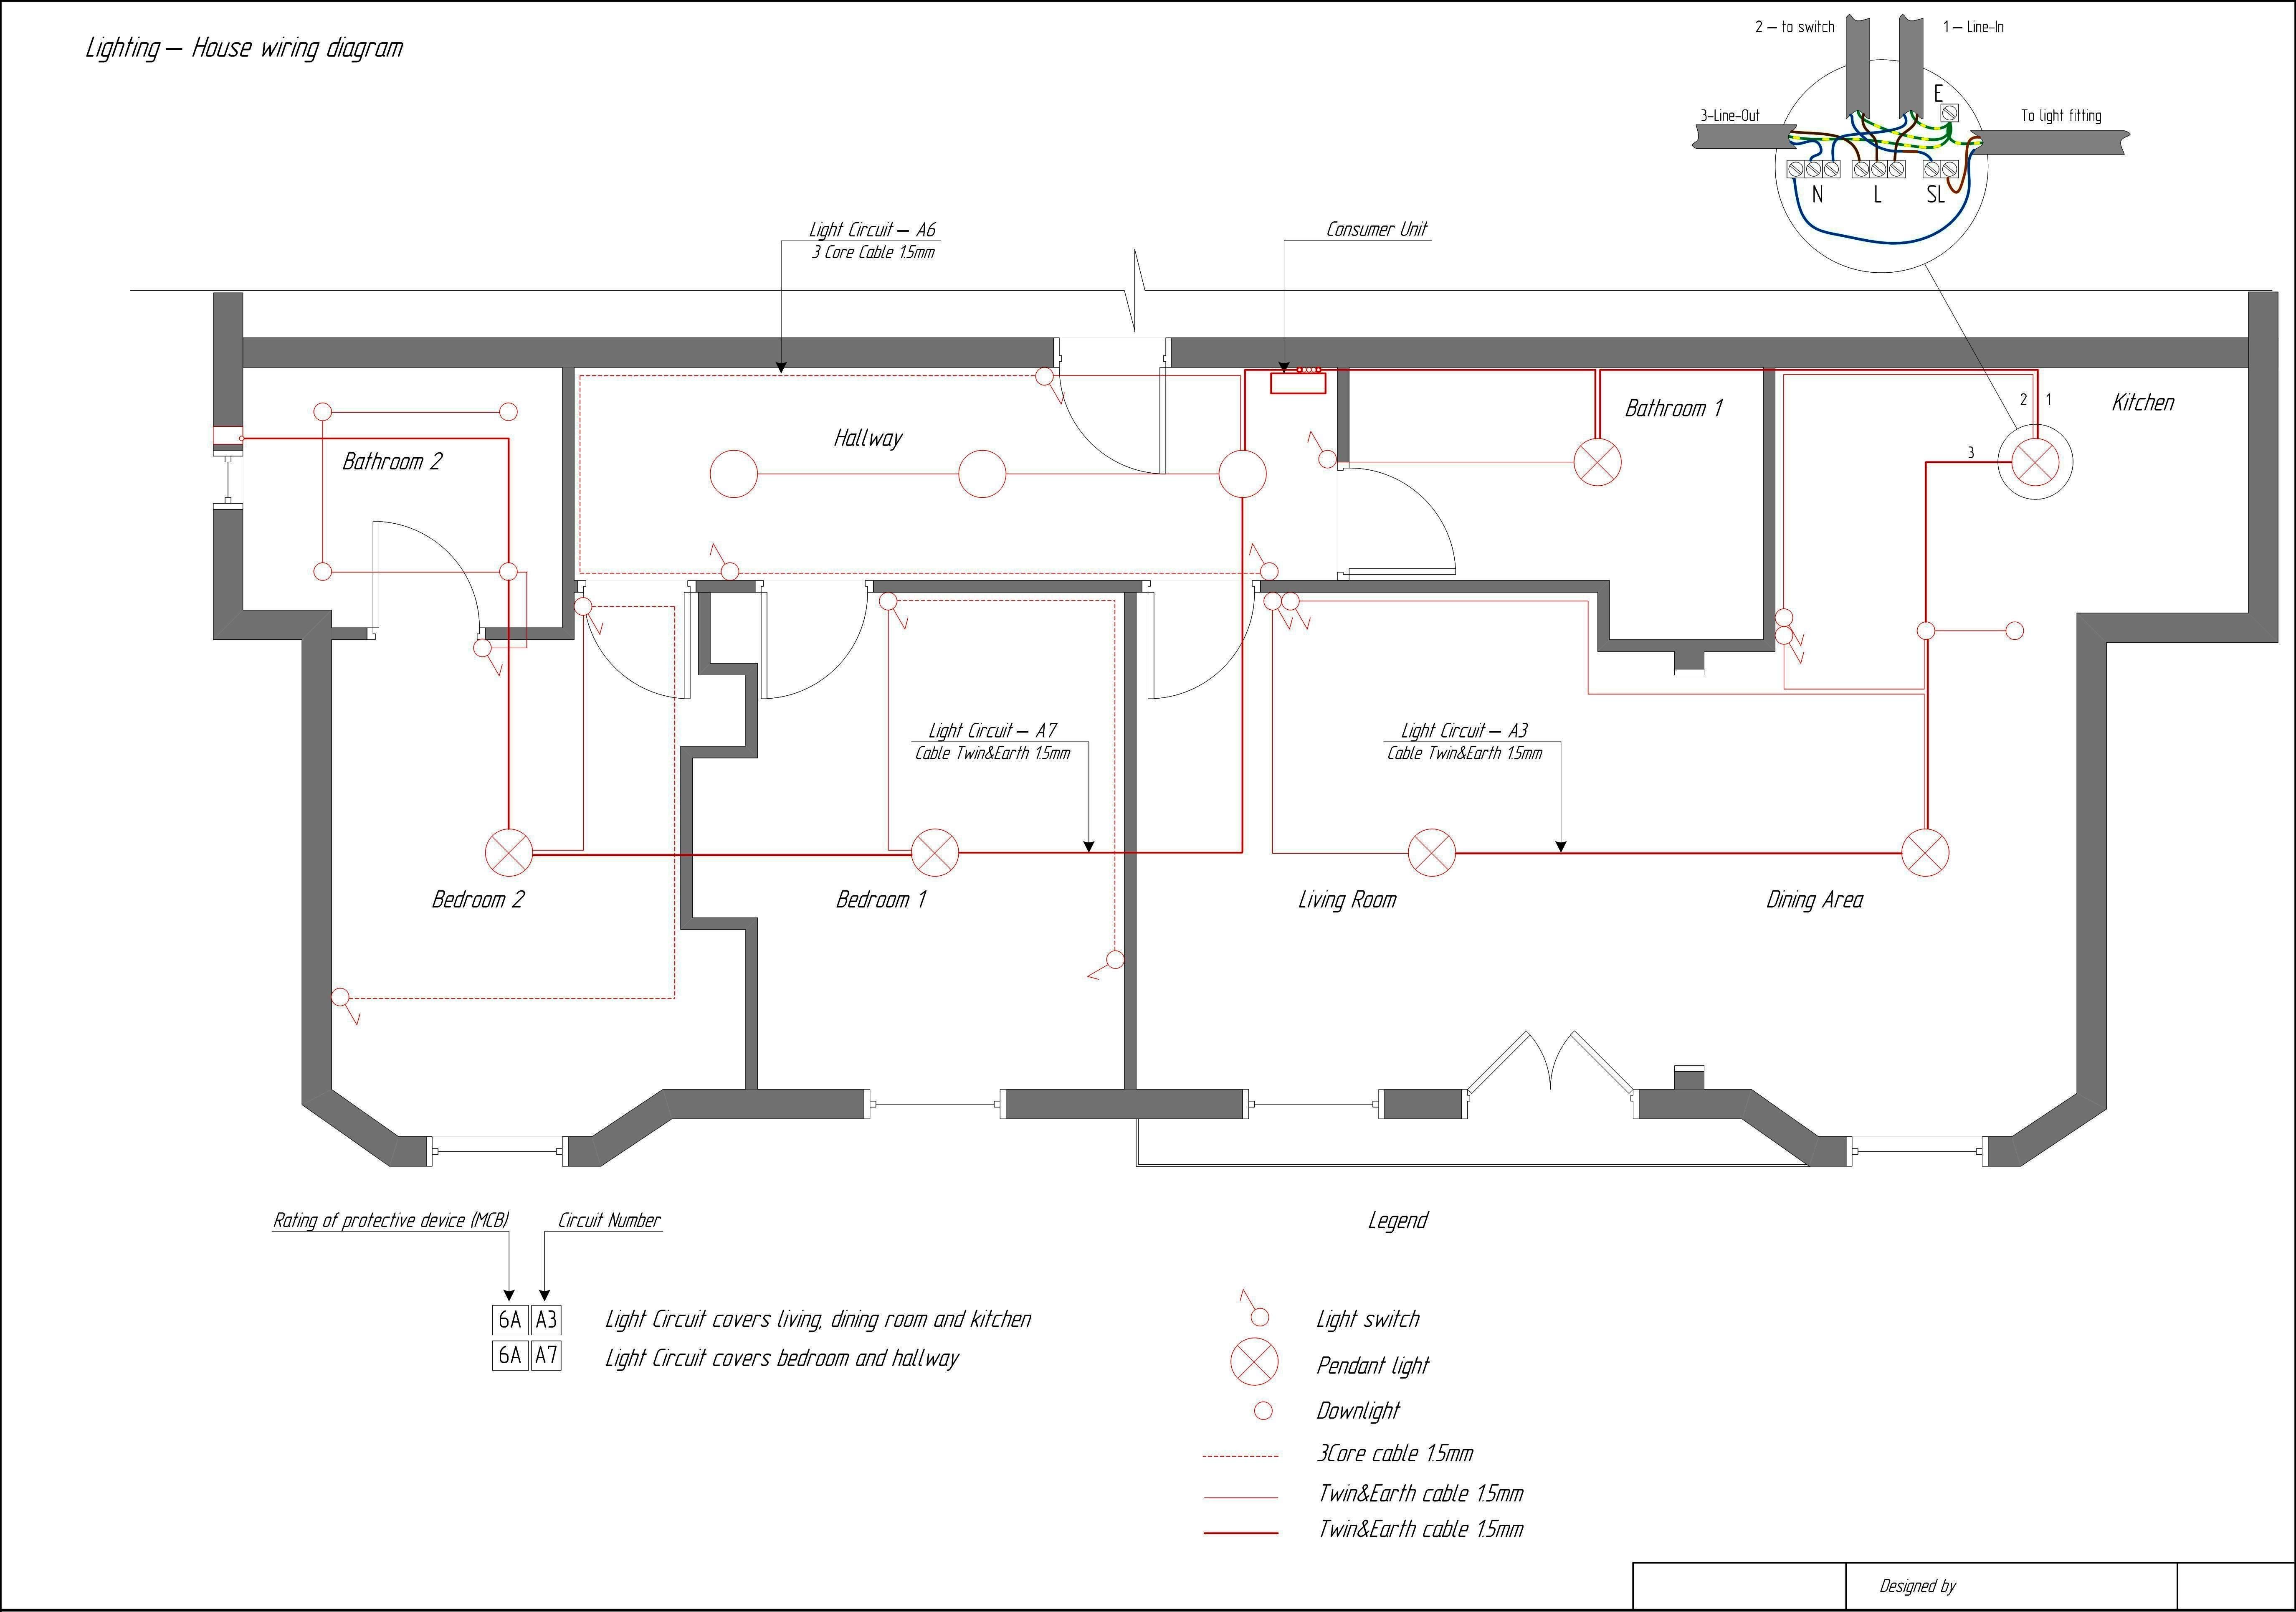 Home Electrical Wiring Diagrams House Wiring Diagram House Wiring Diagrams Database Of Home Electrical Wiring Diagrams